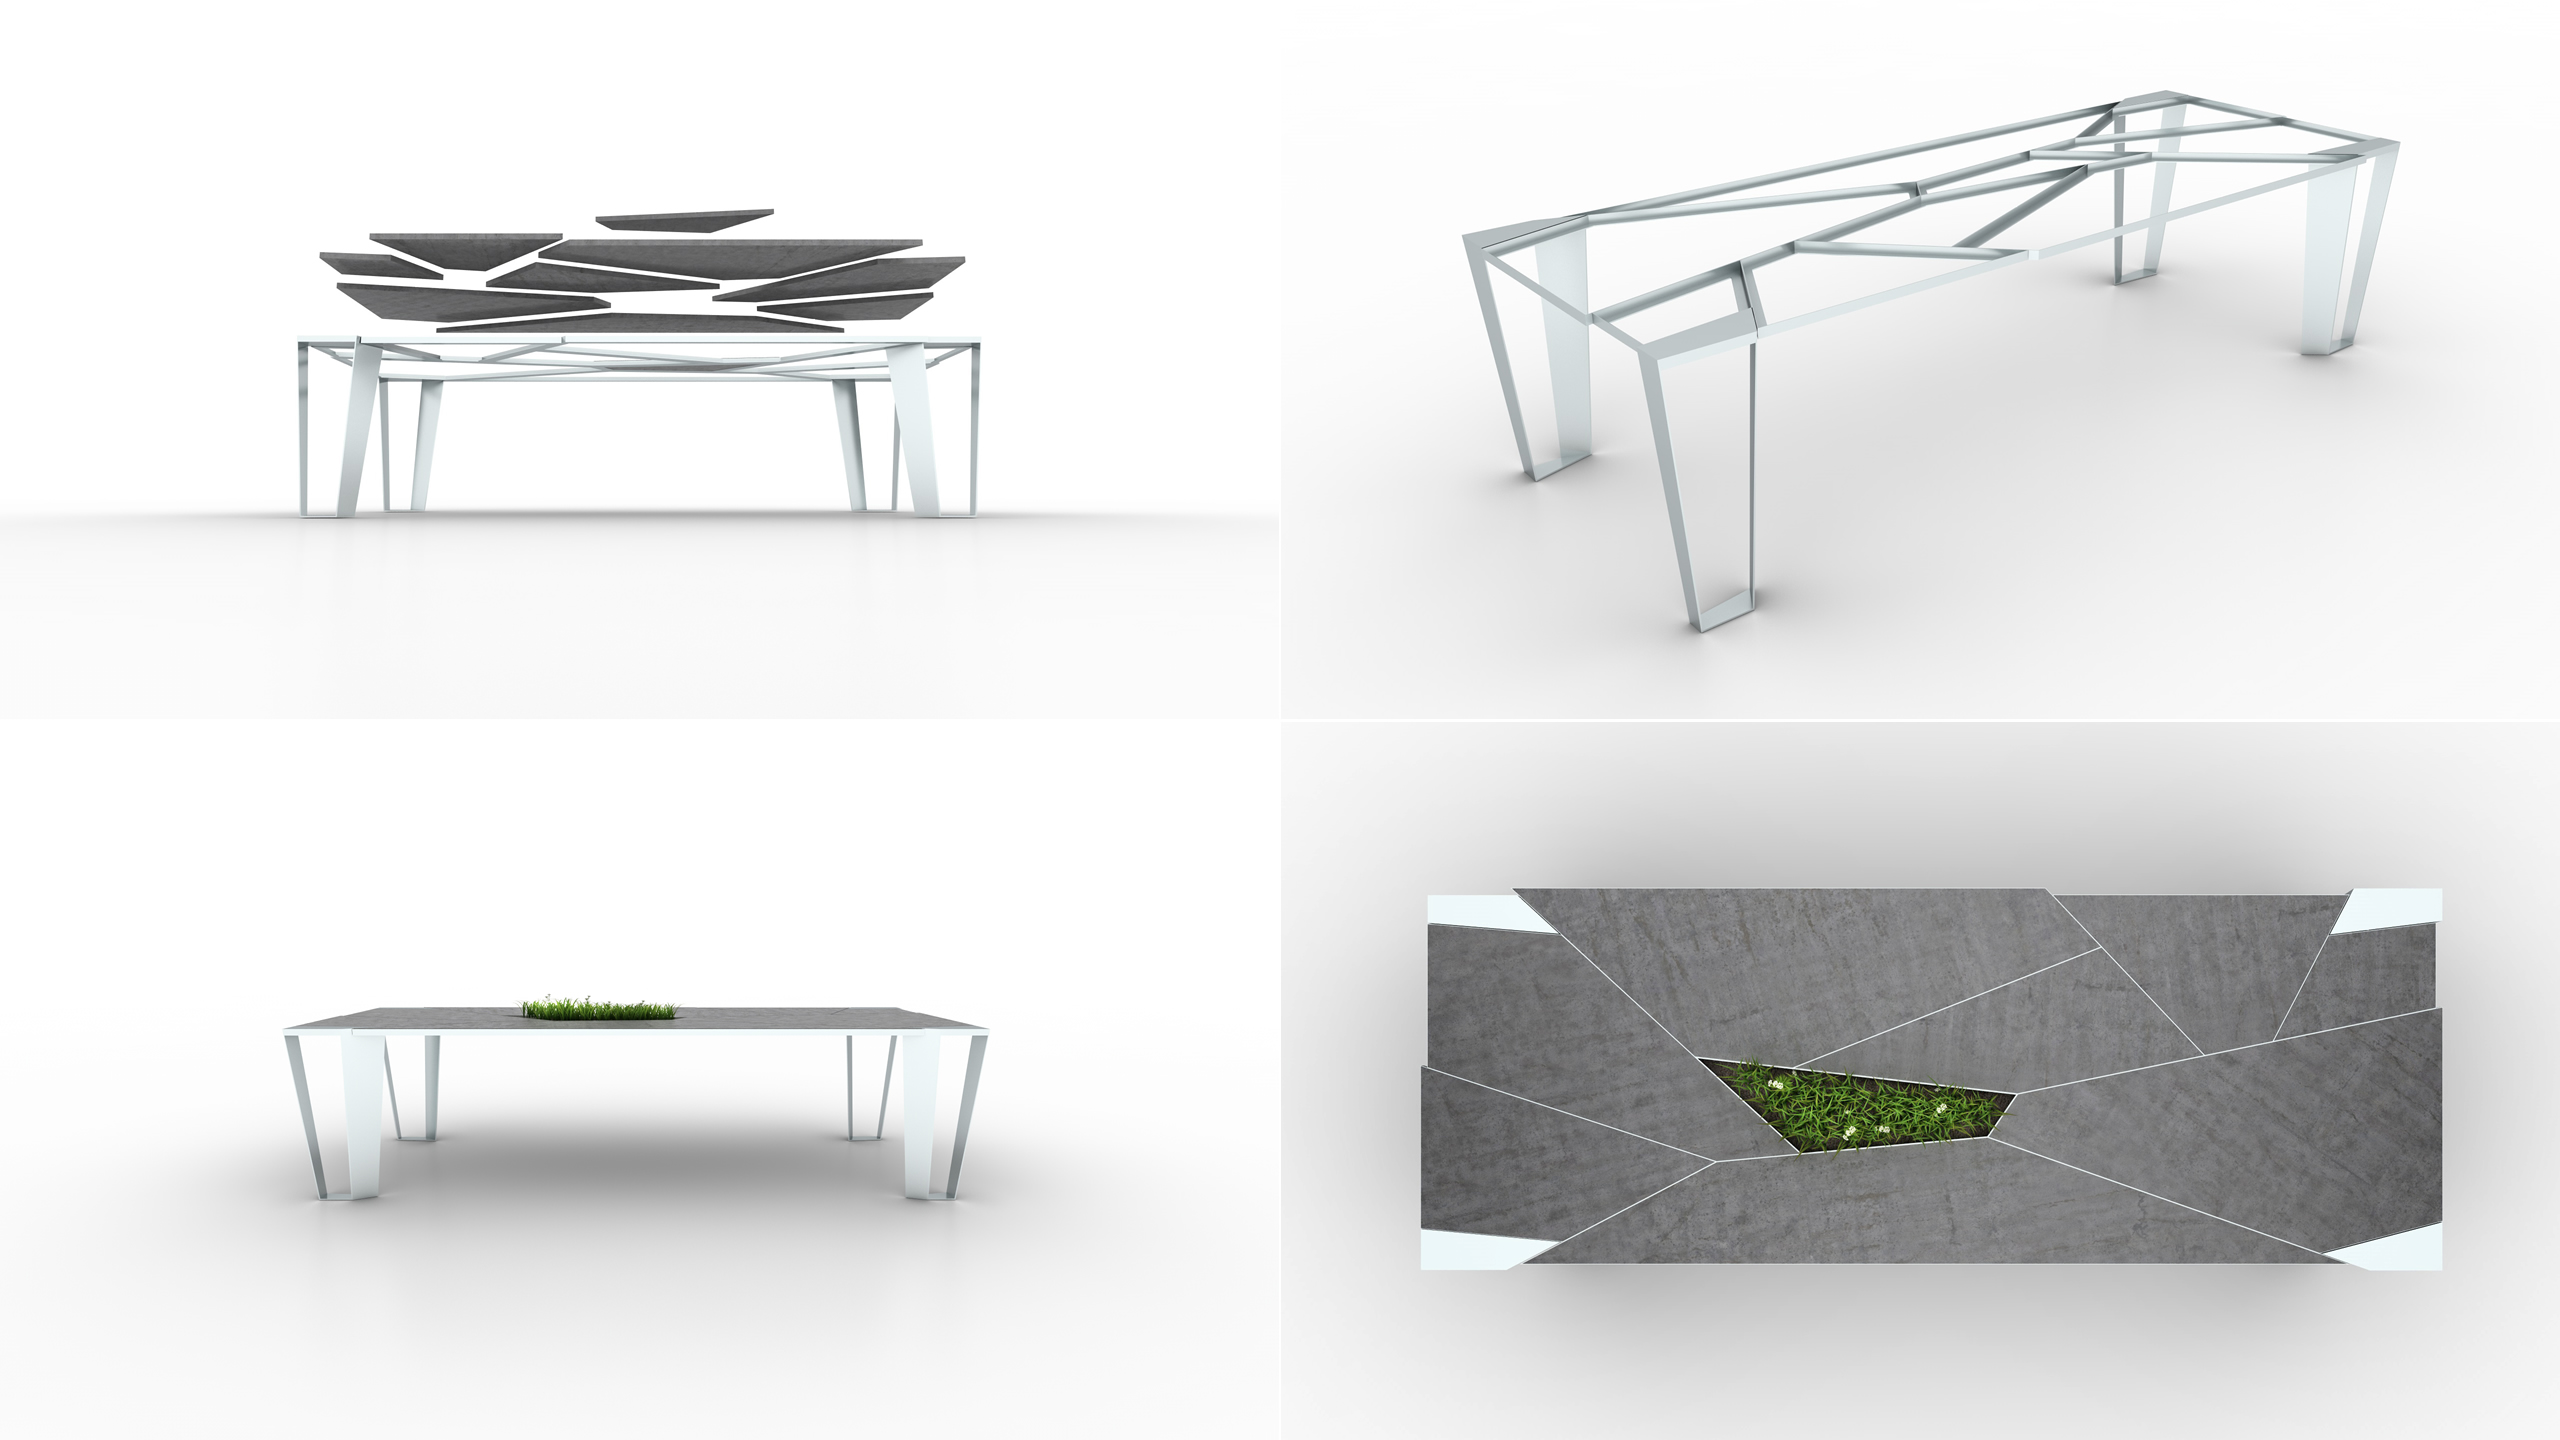 whocares_design_sacac_concretetable_v3_renderings_001